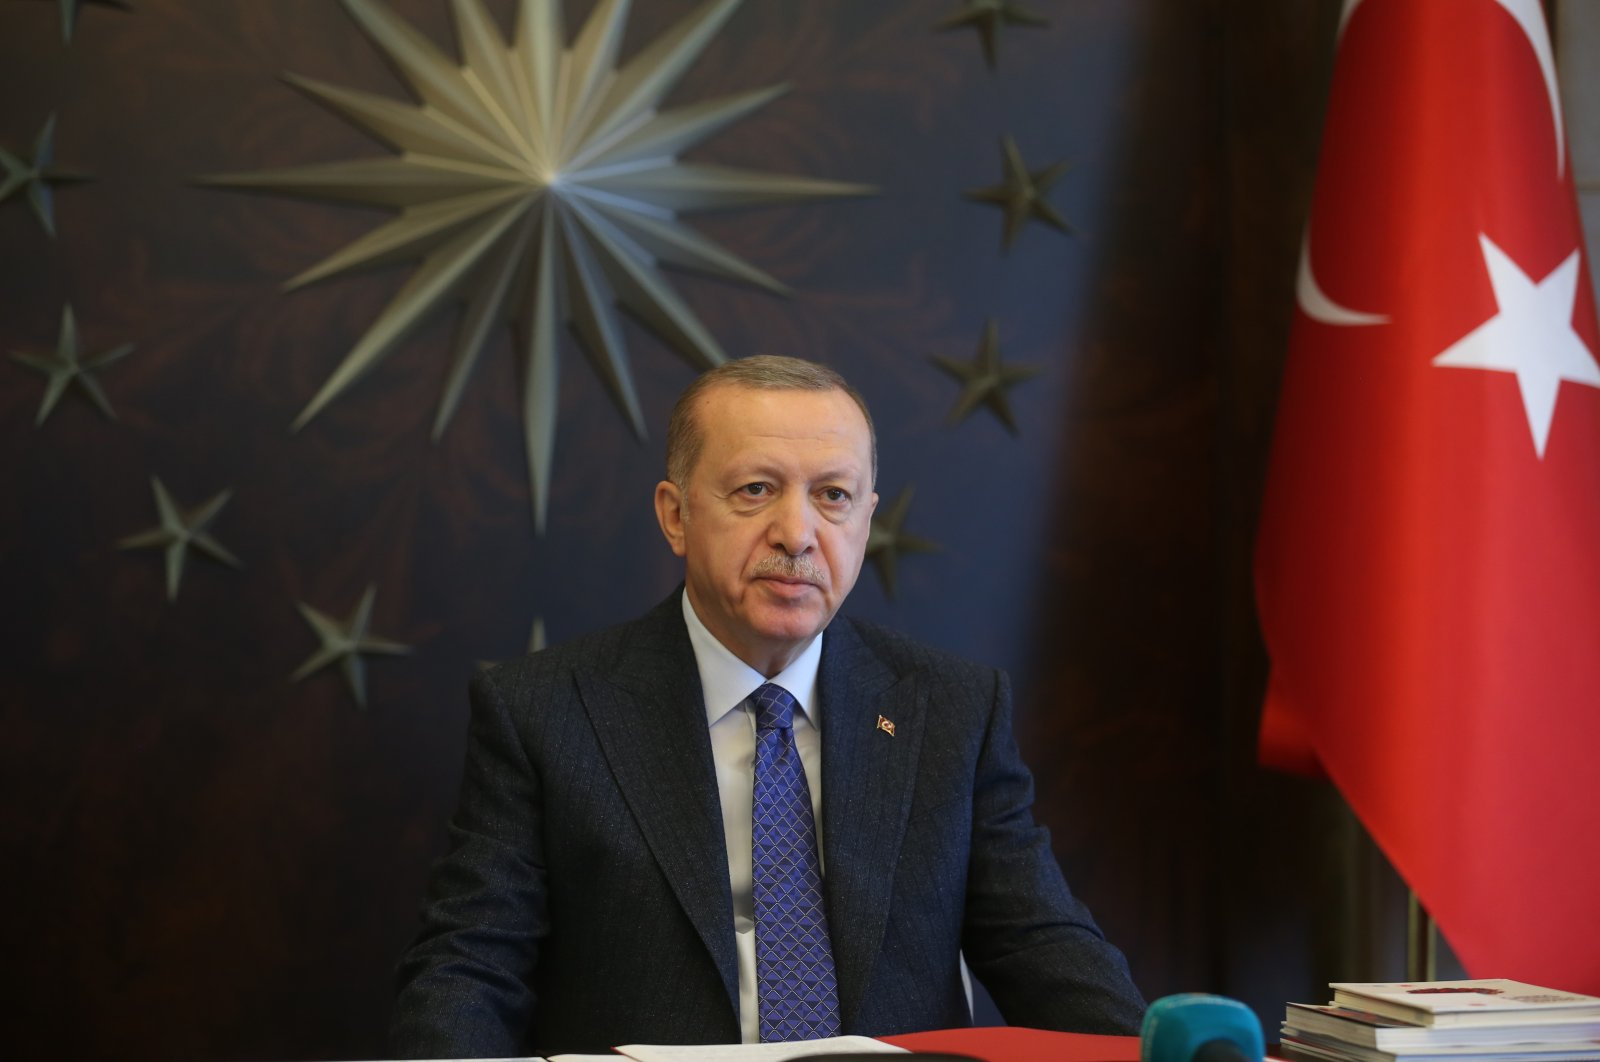 President Recep Tayyip Erdoğan during a videoconference in the Presidential Complex, Ankara, May 22, 2020. (DHA Photo)